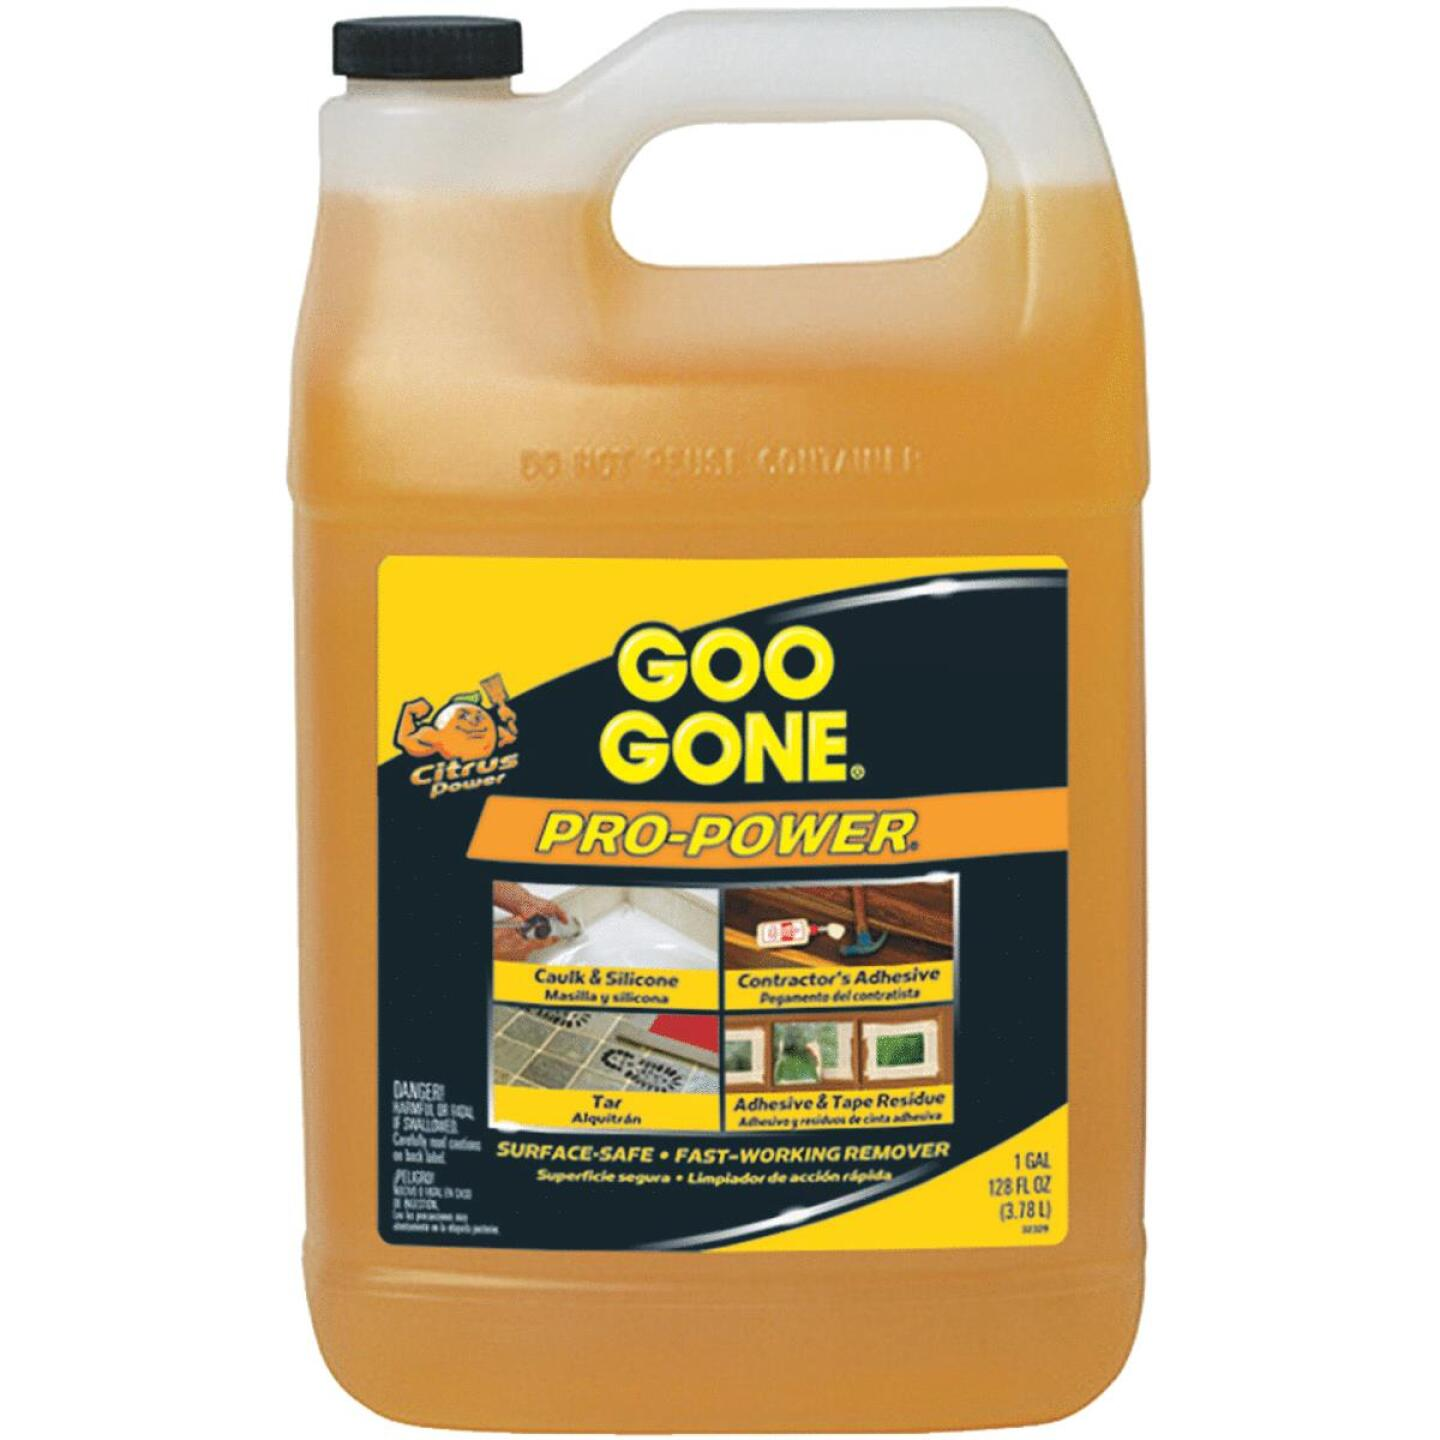 Goo Gone 1 Gal. Pro-Power Adhesive Remover Image 260